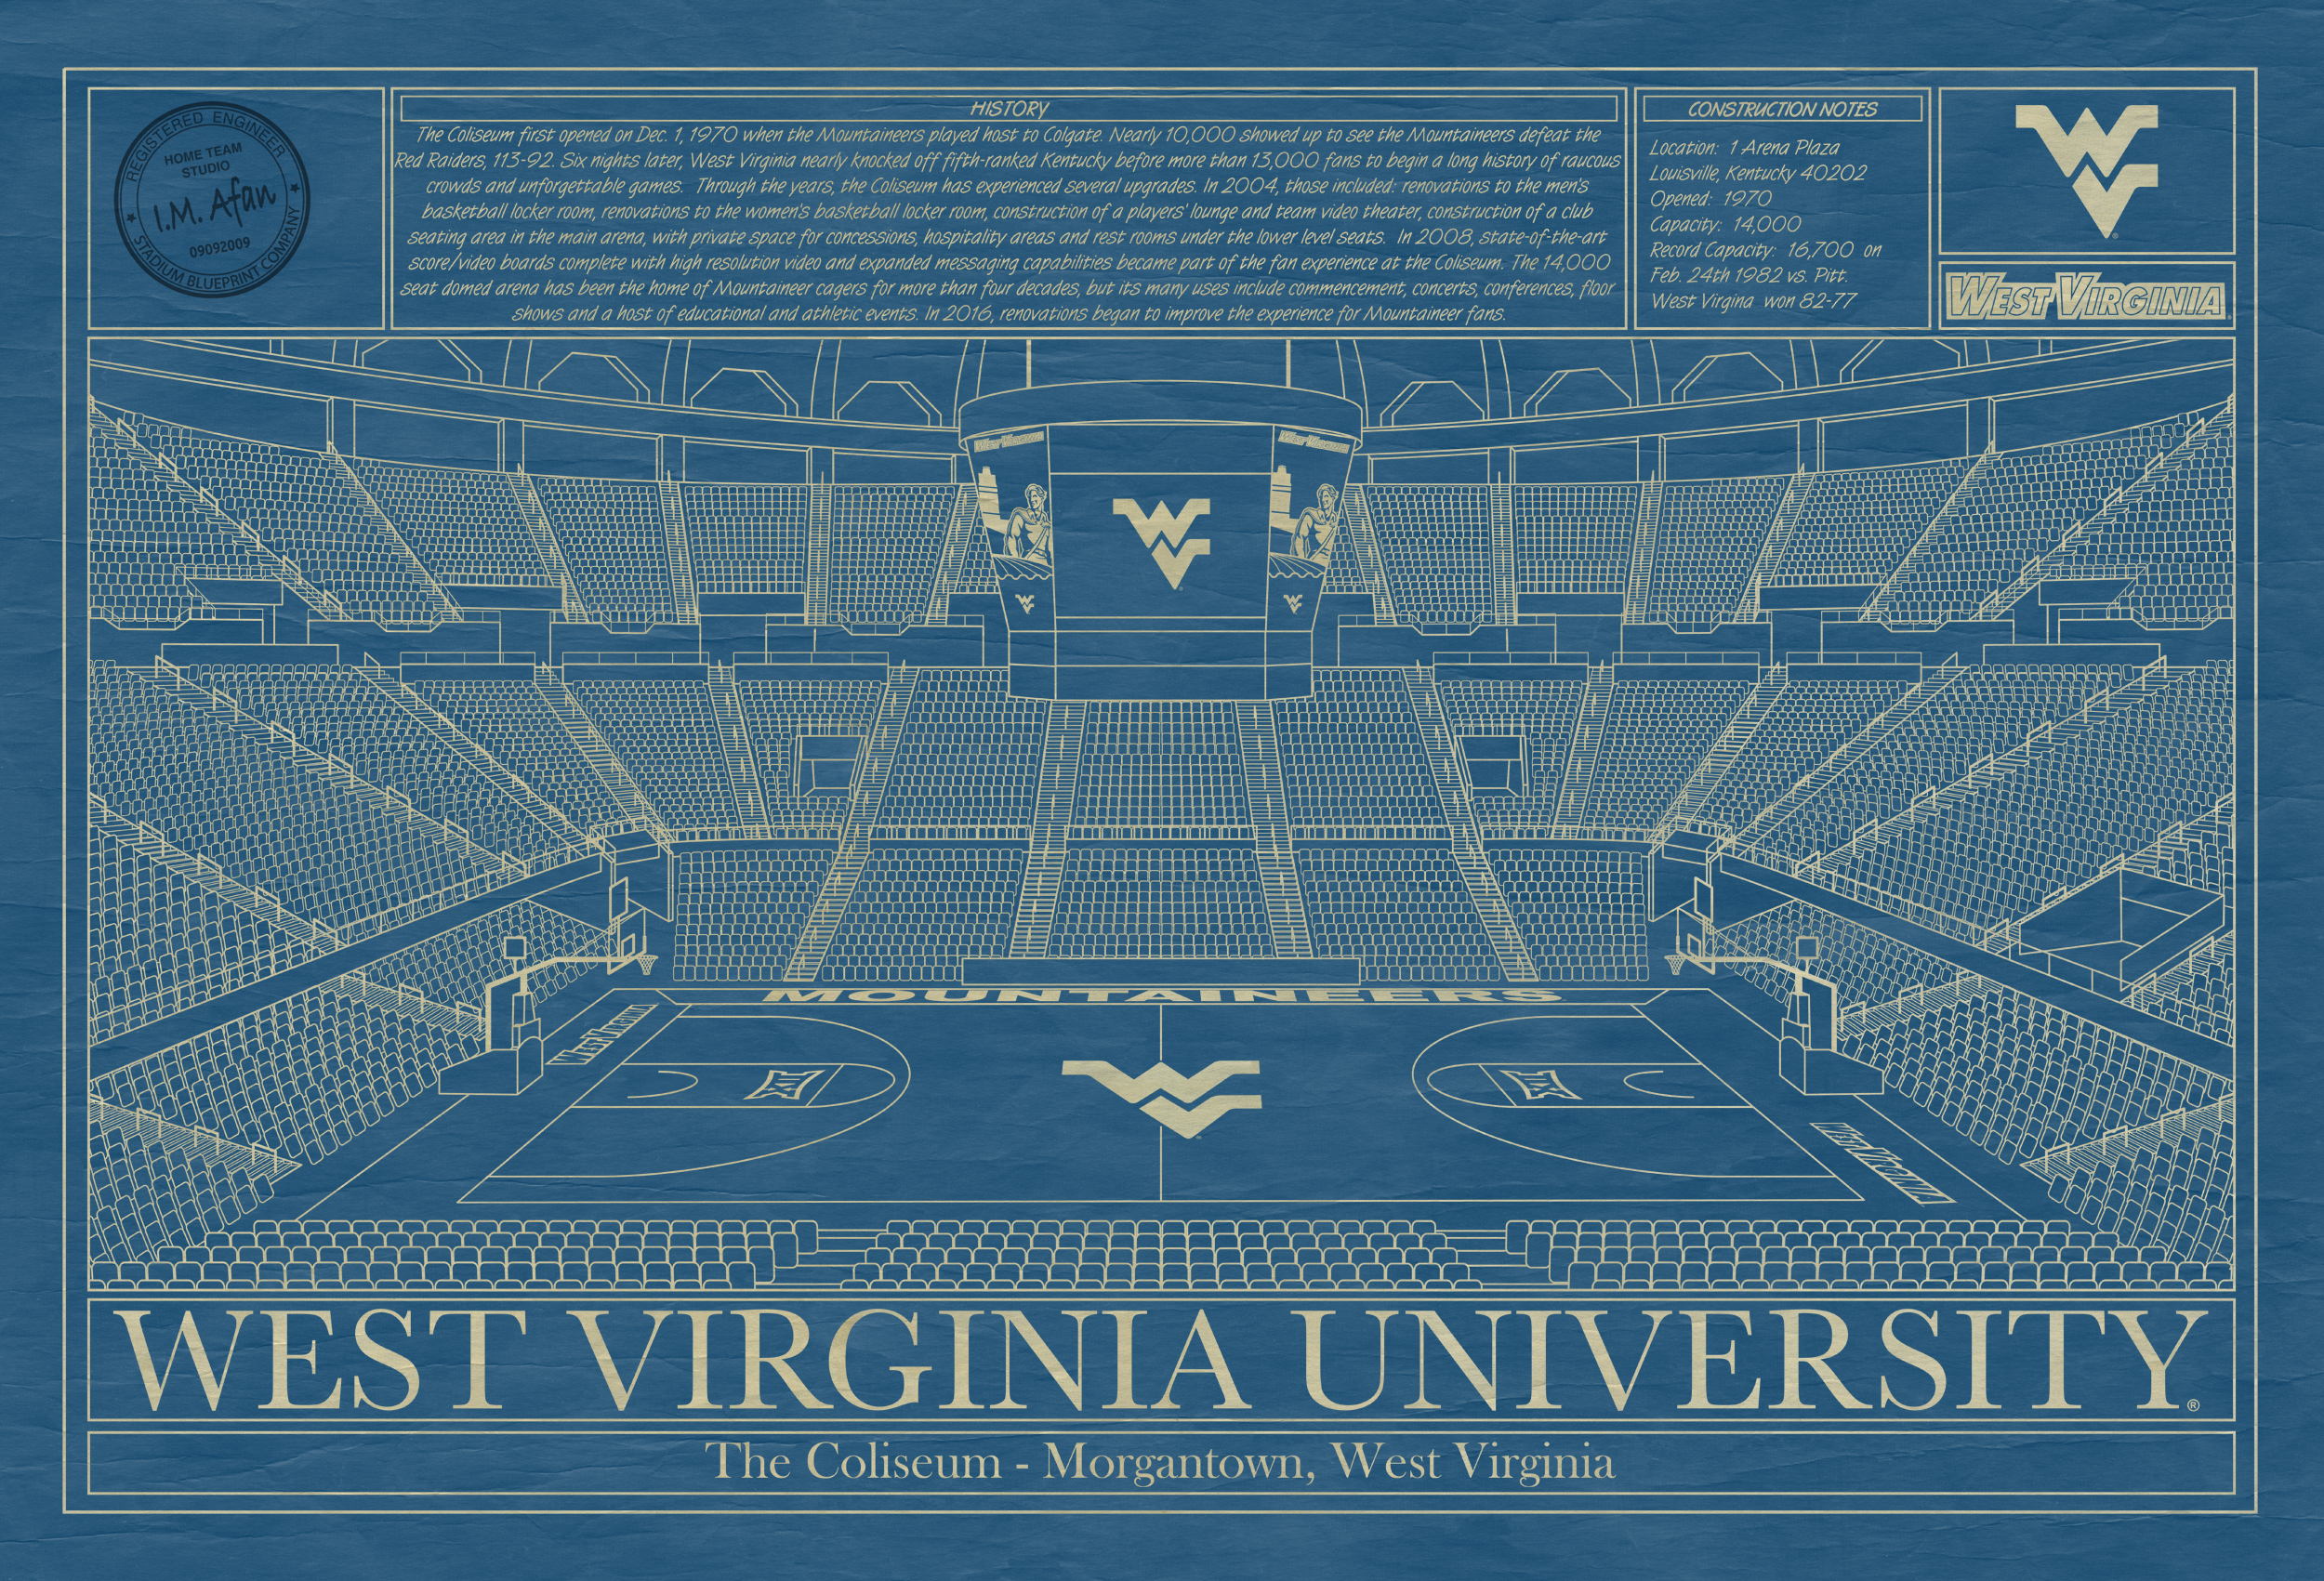 West virginia university archives stadium blueprint company west virginia university wvu coliseum blueprint art malvernweather Image collections